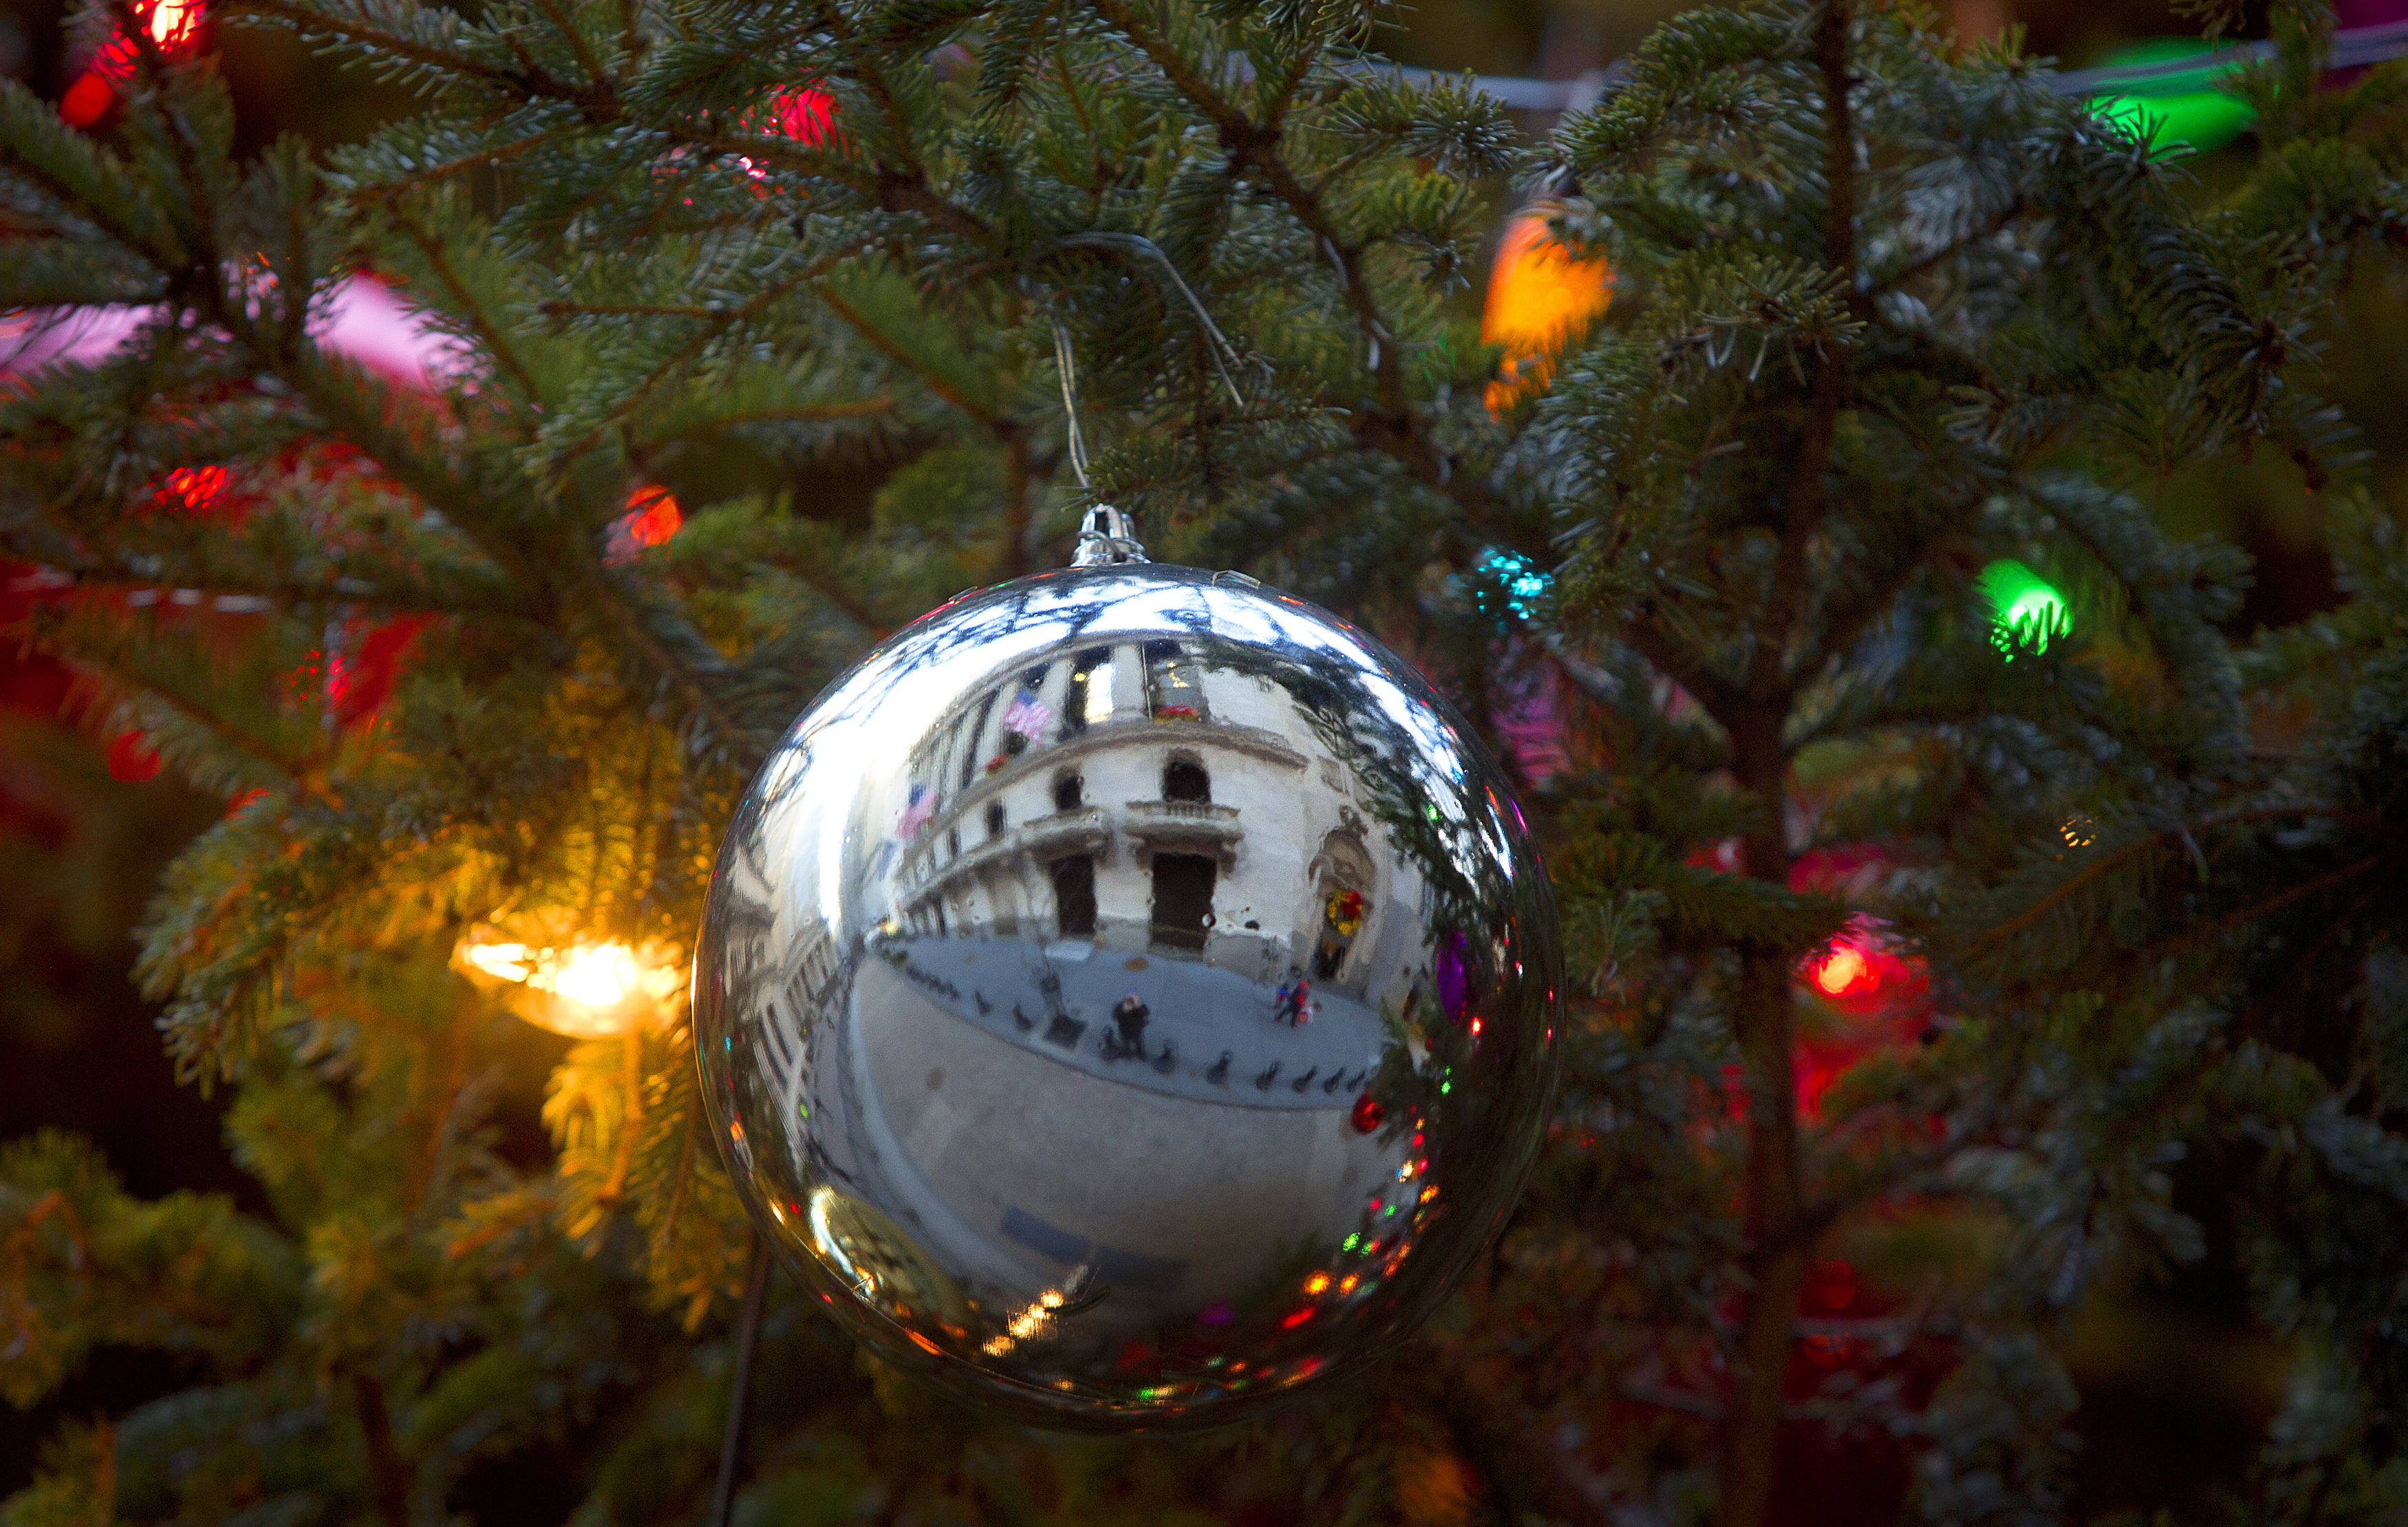 The New York Stock Exchange is pictured reflected in a Christmas Ornament in a tree in New York